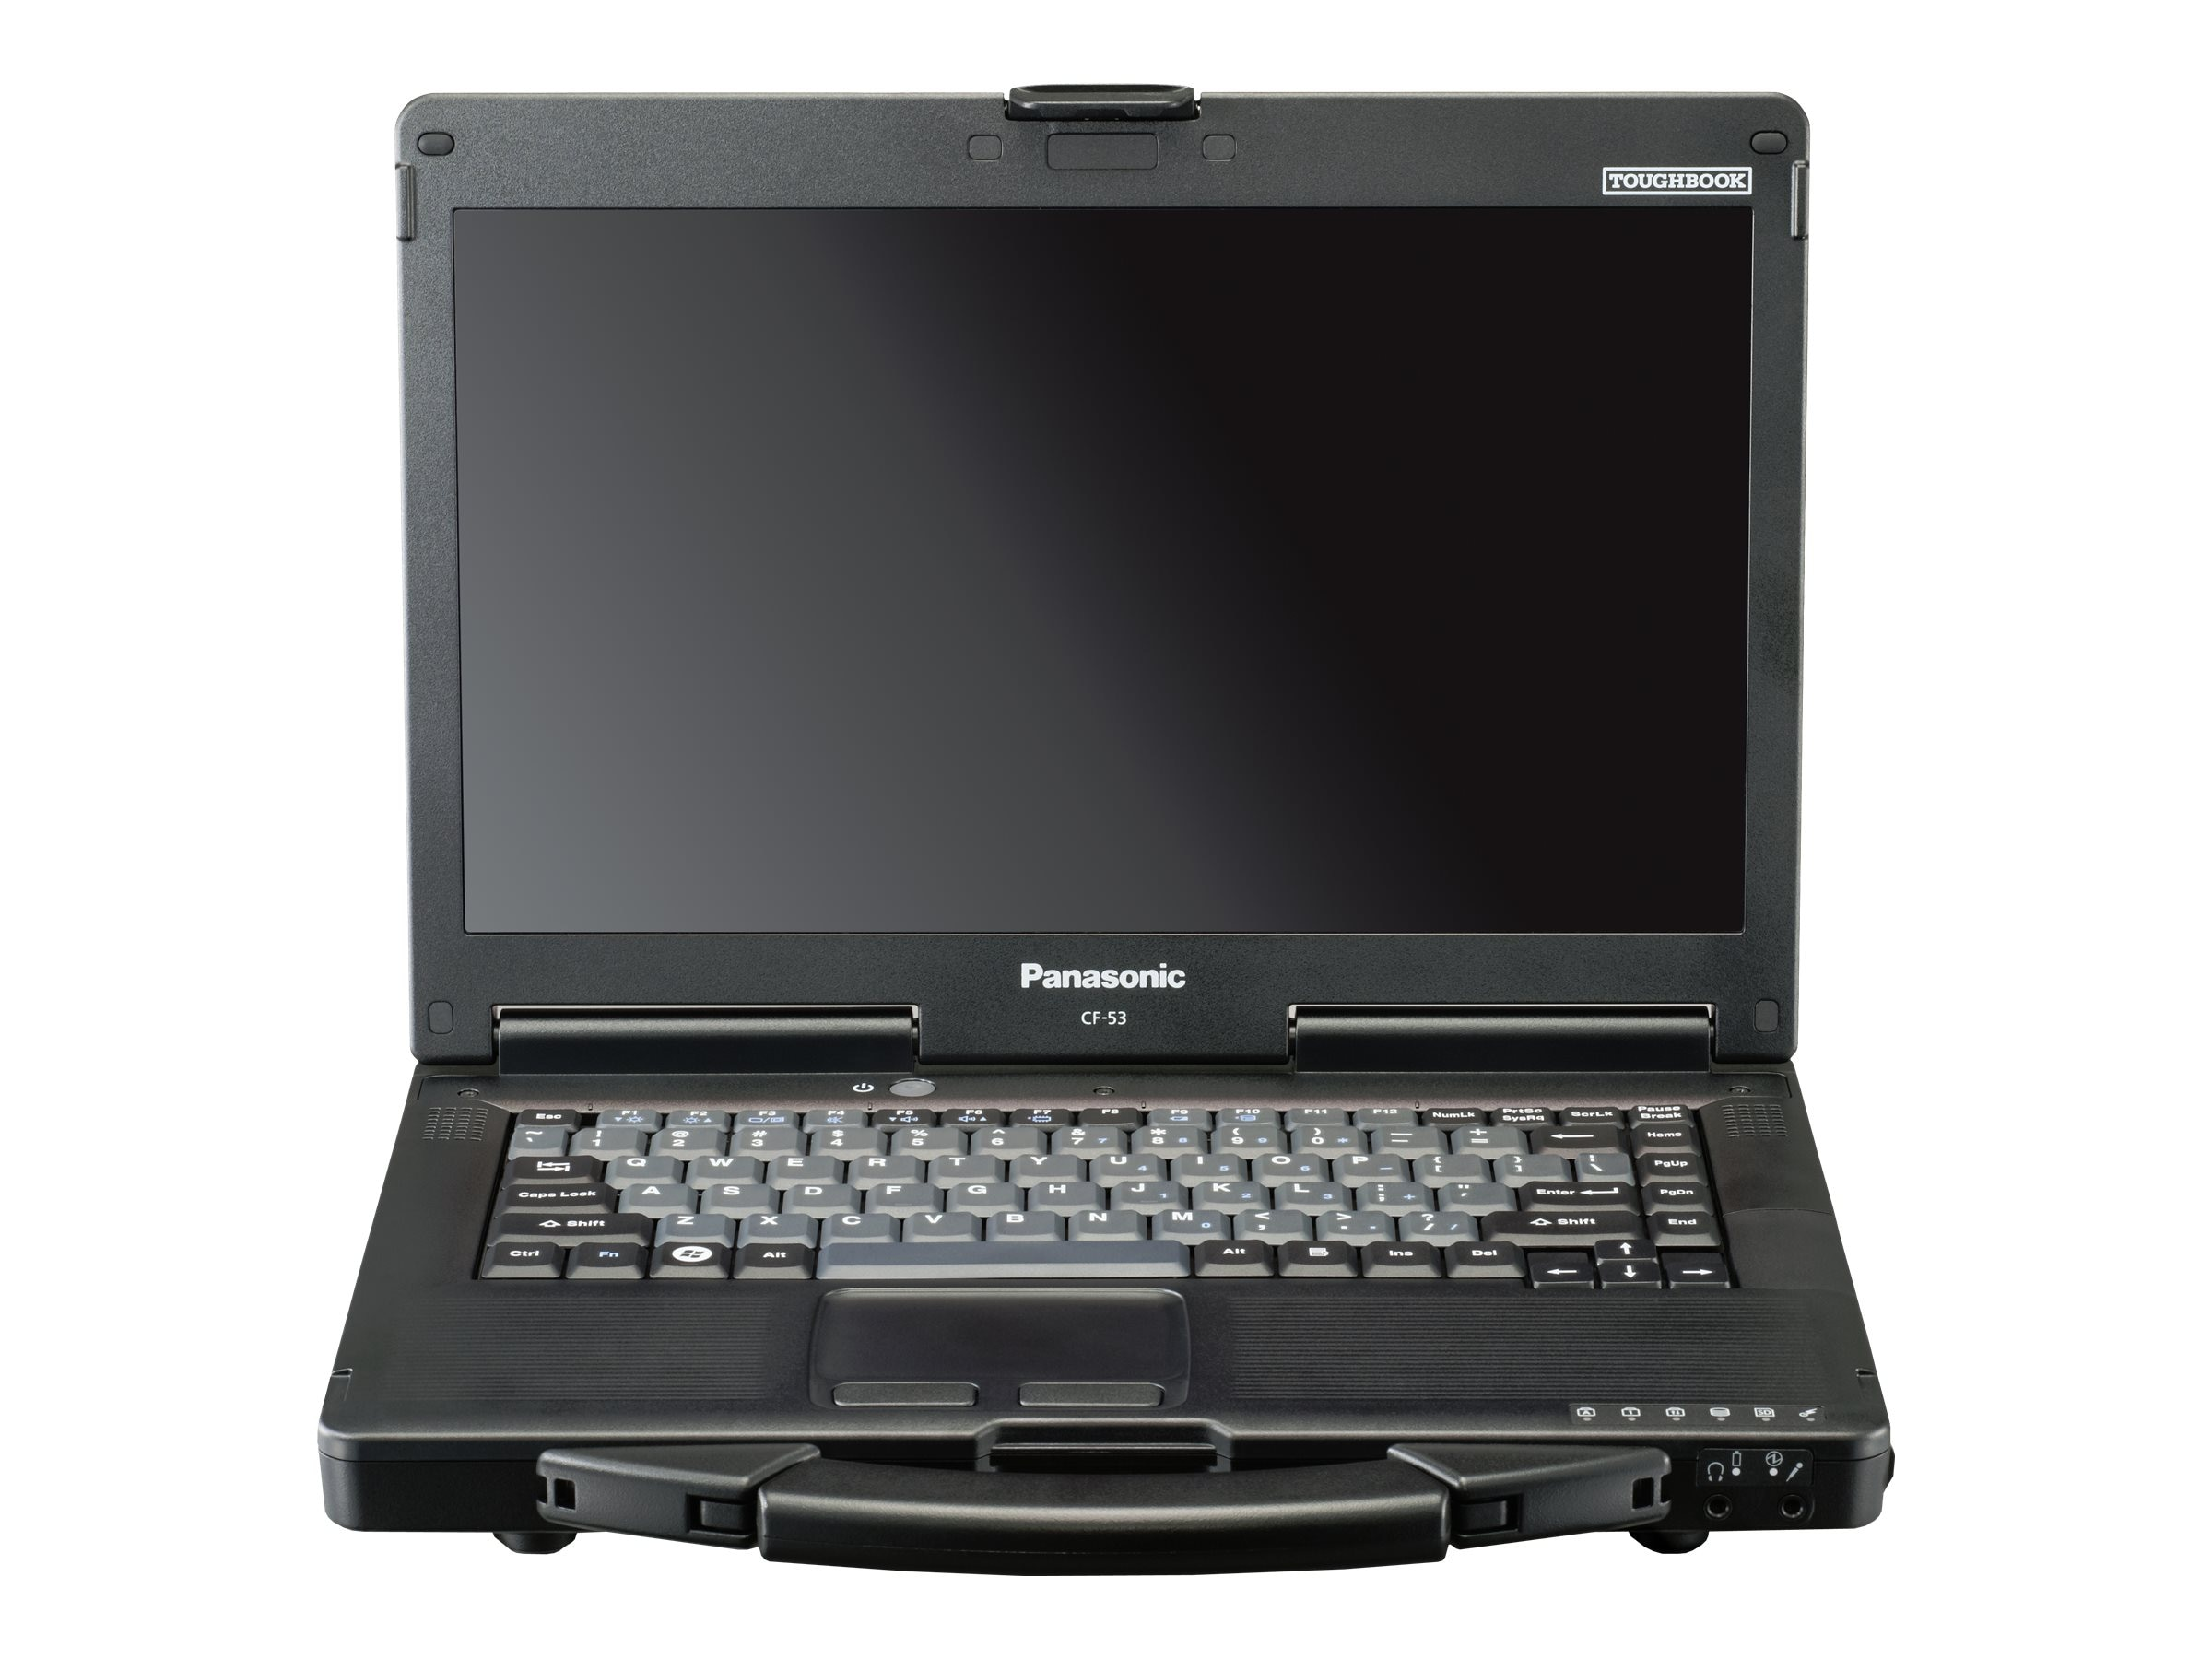 Panasonic Toughbook 53 2.1GHz Core i7 14in display, CF-537CL8PNM